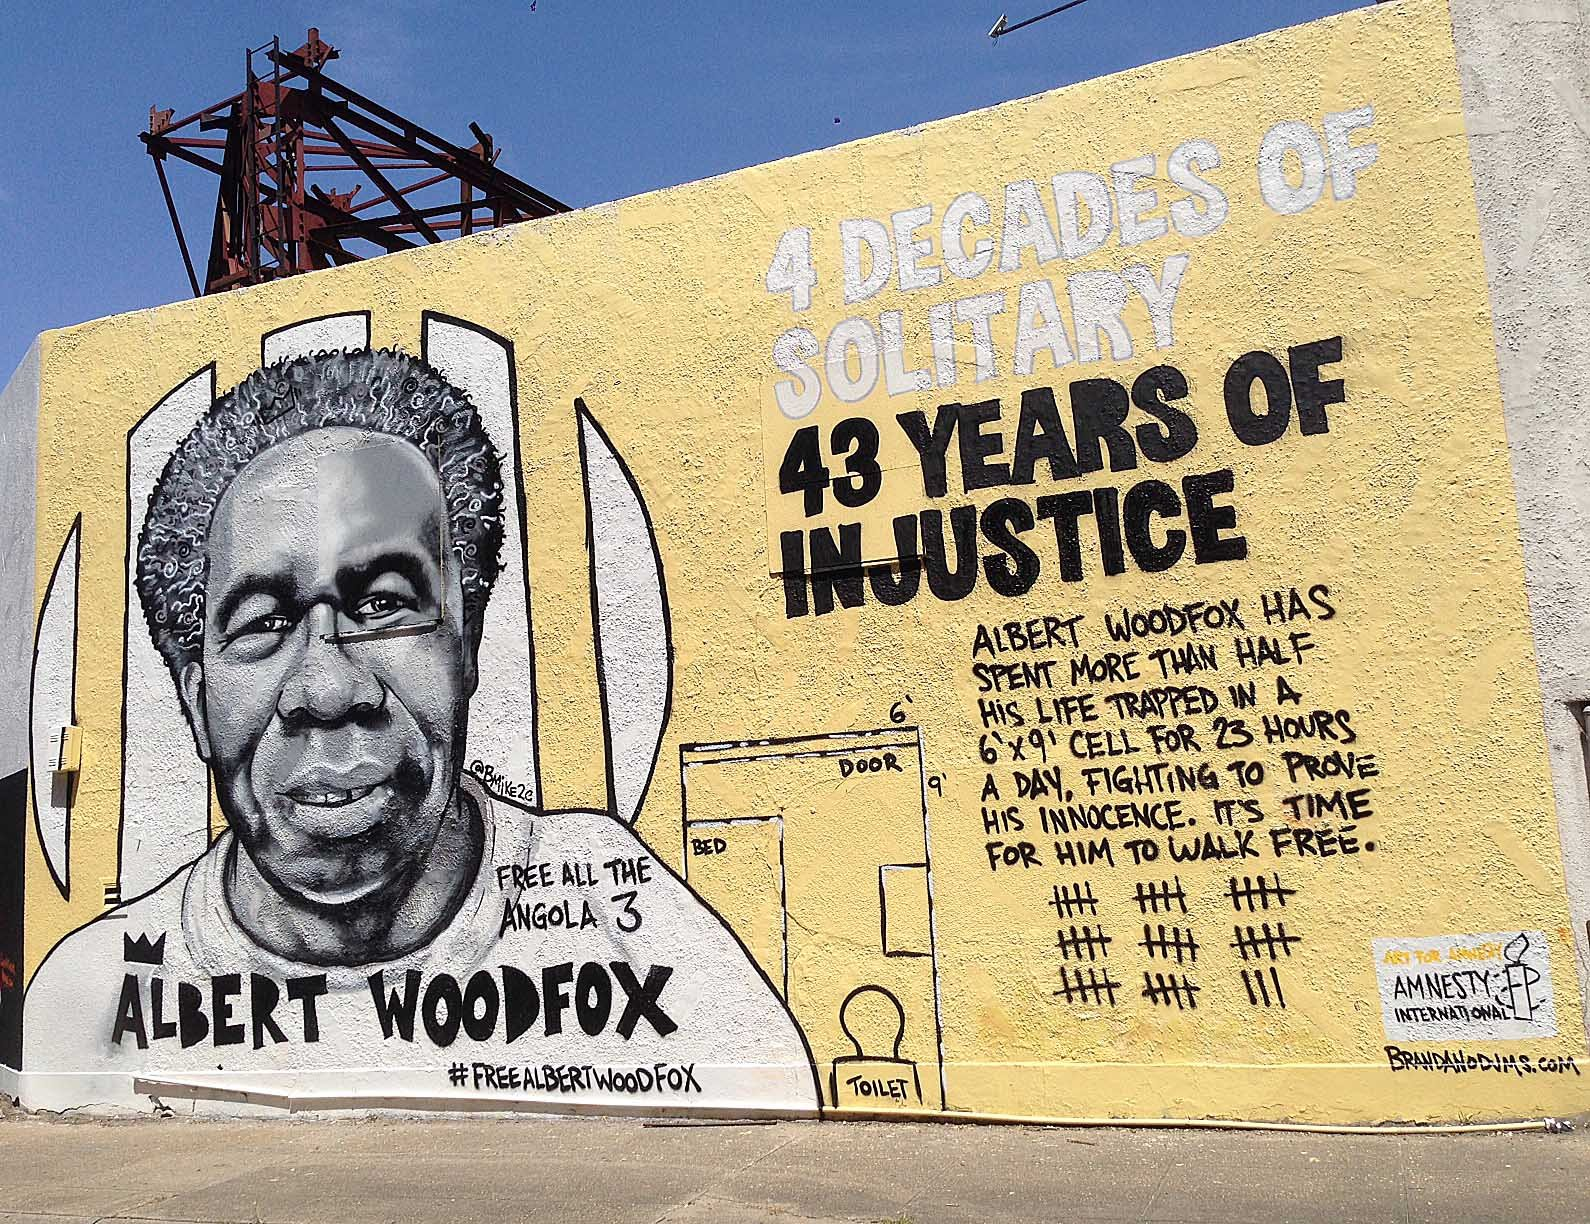 Brandan 'Bmike' Odums' mural of Albert Woodfox in New Orleans, Louisiana